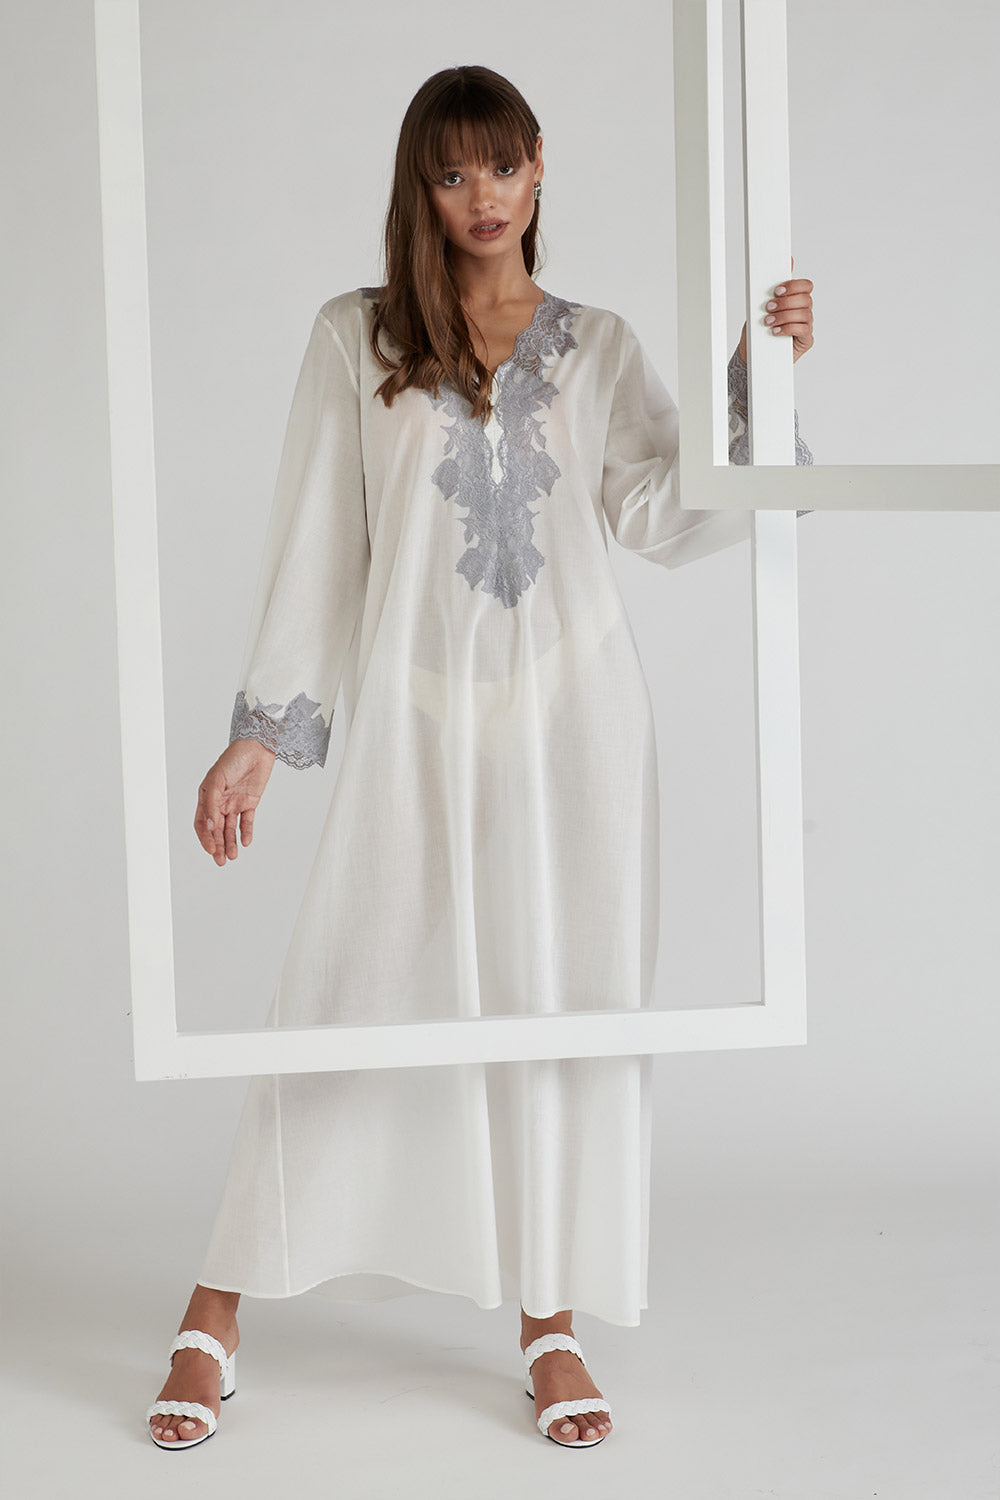 Trimmed Cotton Dress - Off White